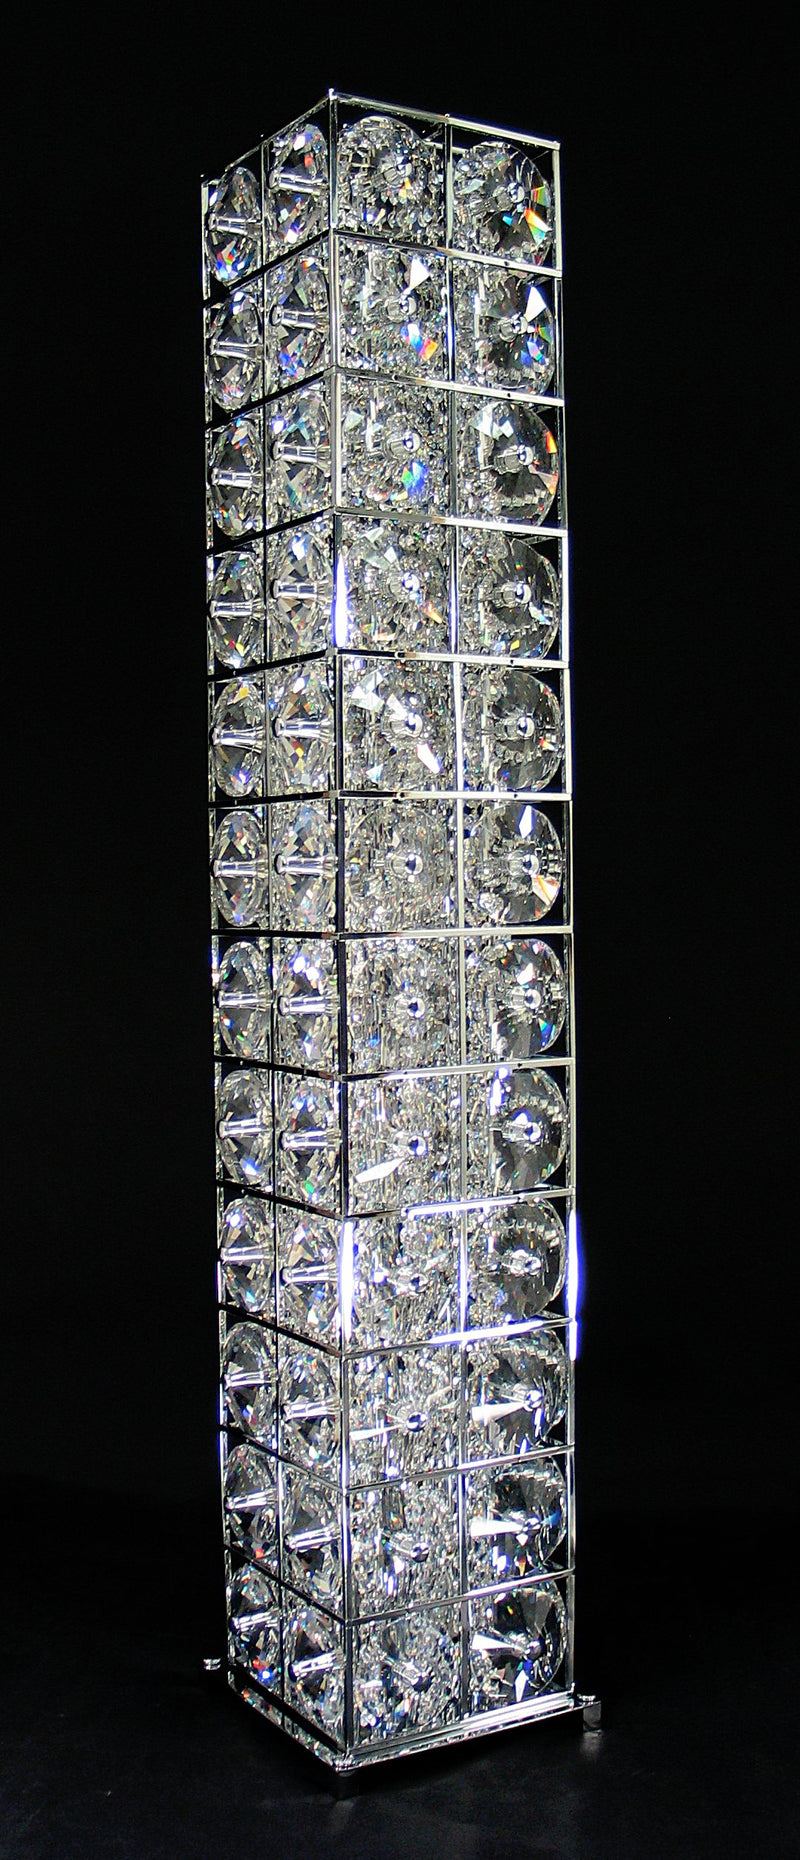 "48 Crystal Floor Lamp - 9"" Square 12 Light - Asfour Crystal [ST-48-9""x9""-1038-96]"